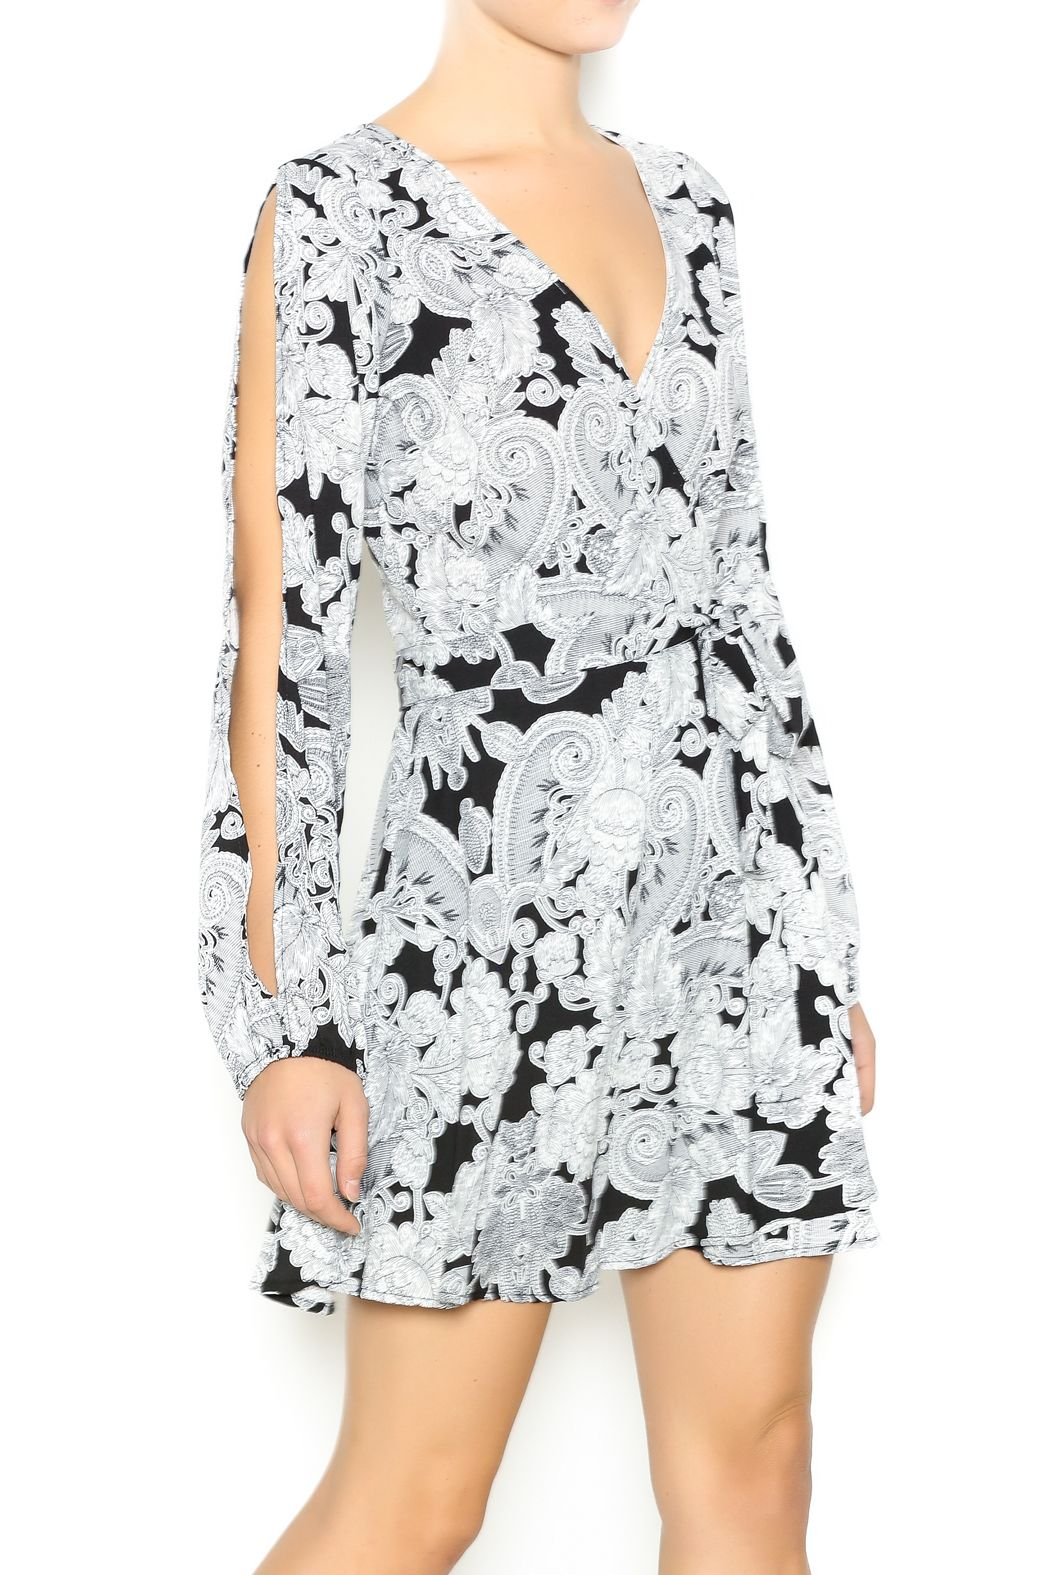 Wish wrap dress wrap dresses floral clothing and wraps